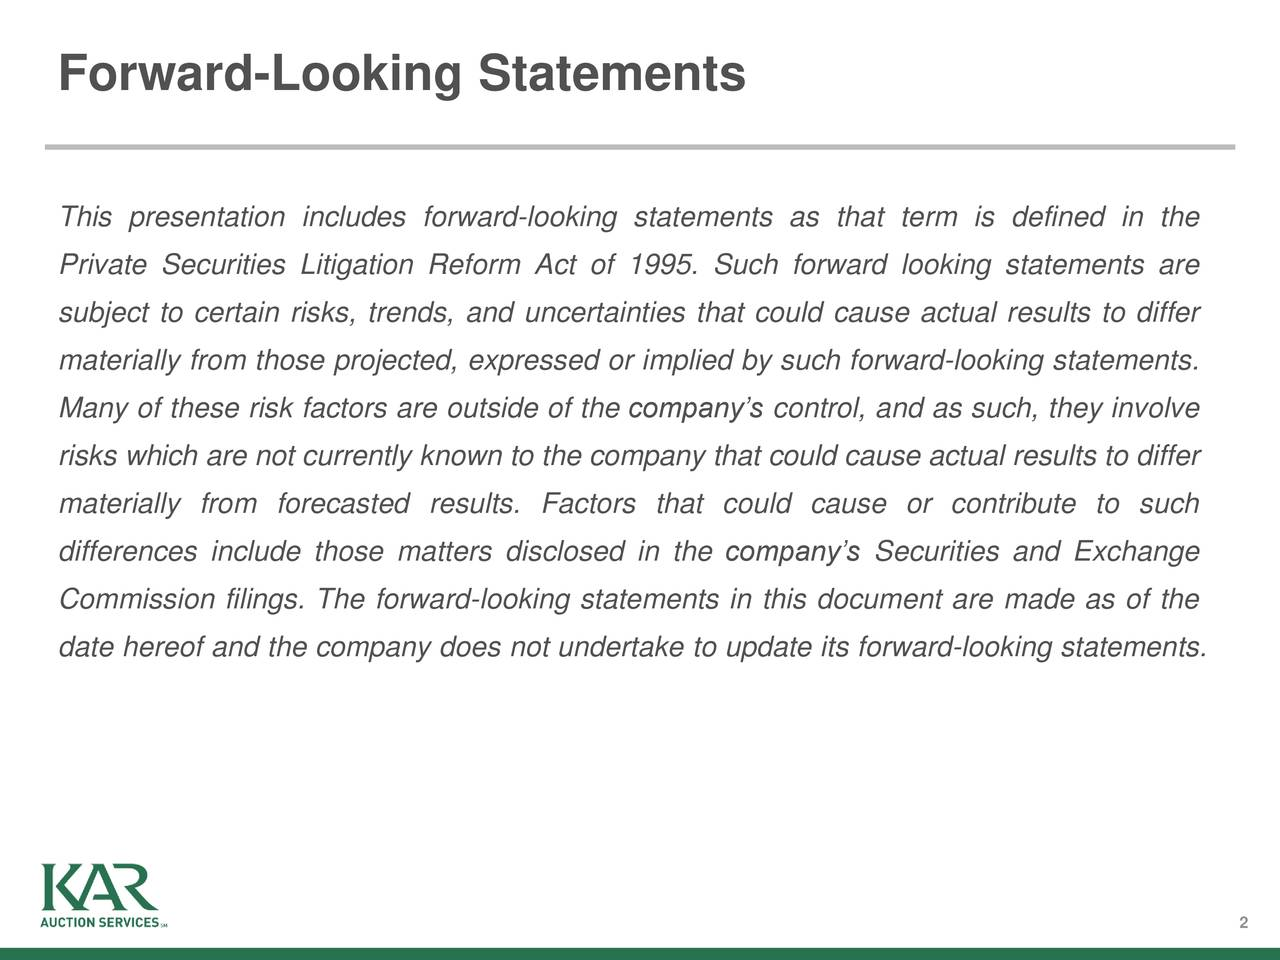 This presentation includes forward-looking statements as that term is defined in the Private Securities Litigation Reform Act of 1995. Such forward looking statements are subject to certain risks, trends, and uncertainties that could cause actual results to differ materially from those projected, expressed or implied by such forward-looking statements. Many of these risk factors are outside of the company's control, and as such, they involve risks which are not currently known to the company that could cause actual results to differ materially from forecasted results. Factors that could cause or contribute to such differences include those matters disclosed in the company's Securities and Exchange Commission filings. The forward-looking statements in this document are made as of the date hereof and the company does not undertake to update its forward-looking statements. 2